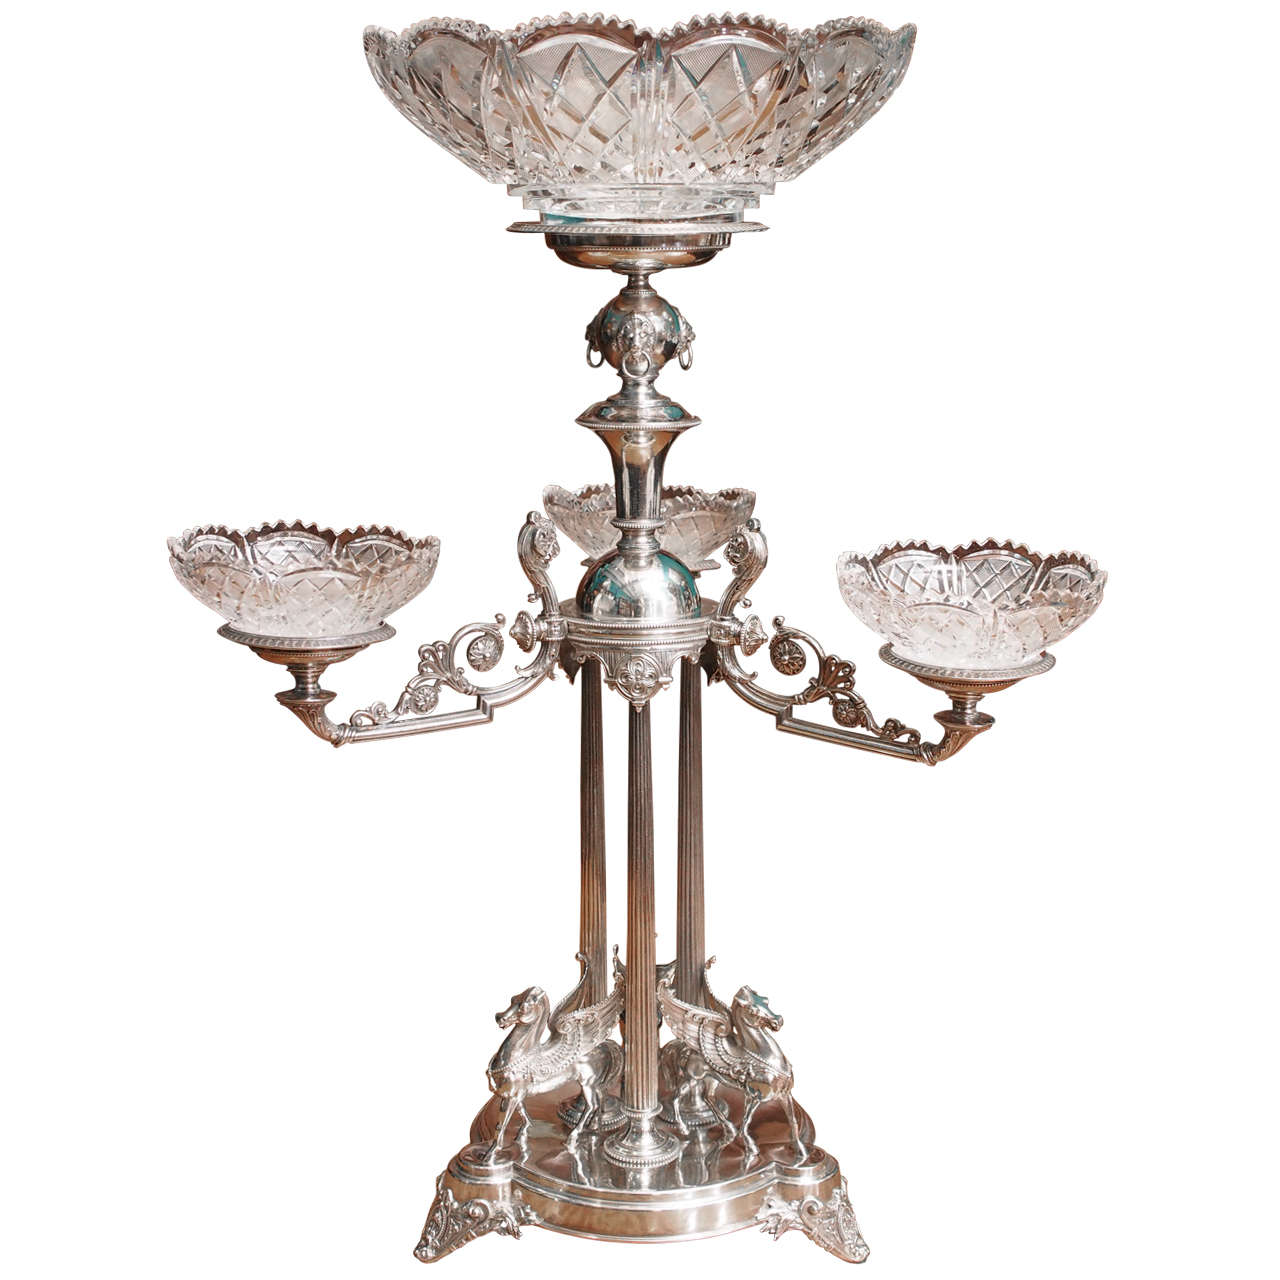 Using Antique Epergne for Dining Table Accessories Ideas: Chic Epergne | Charming Glass Epergne Inspirations